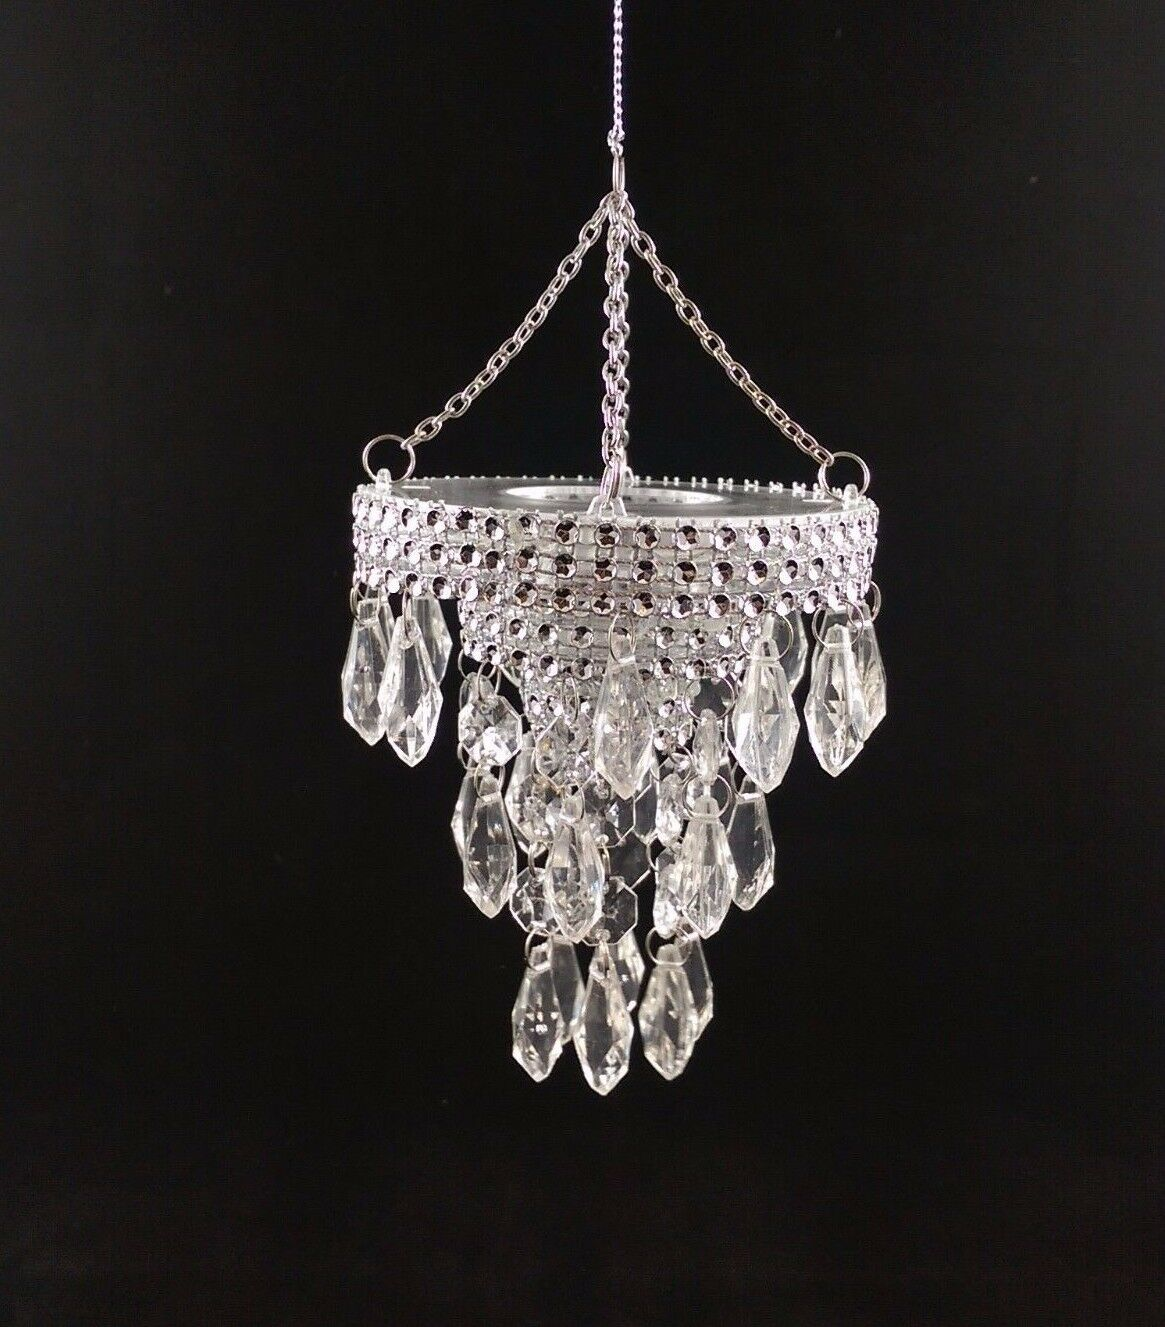 4 Acrylic Crystal Chandelier Christmas Hanging Ornament Decor For Sale Online